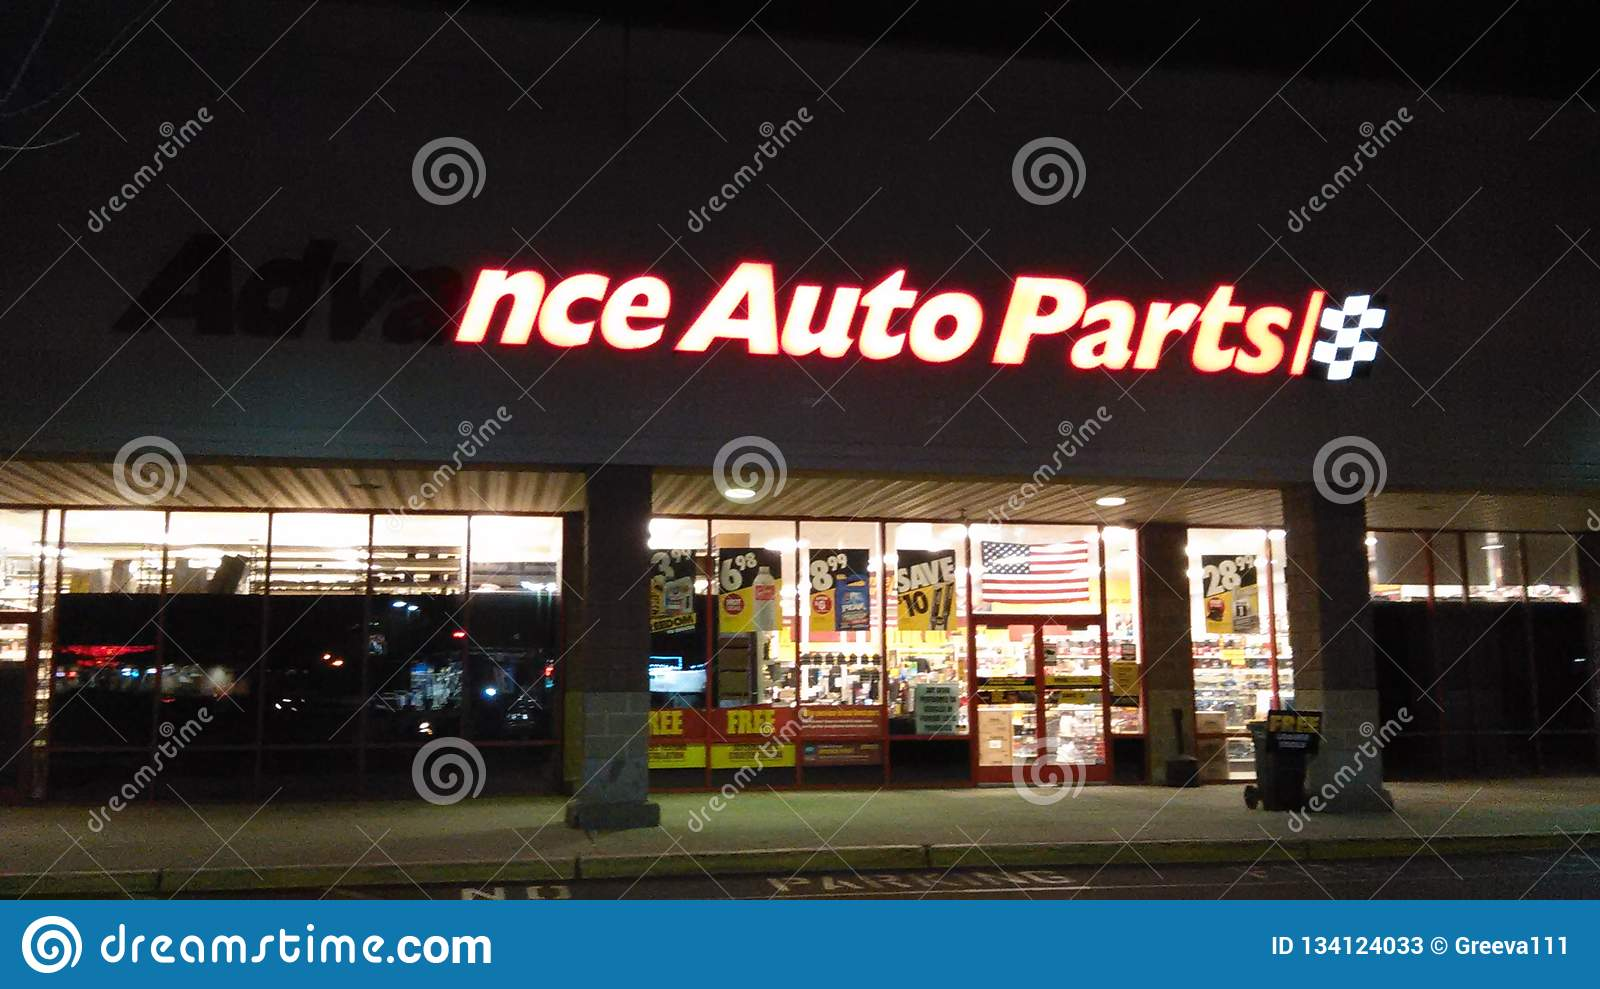 Partially Lighted Advance Auto Parts Front Store Sign With